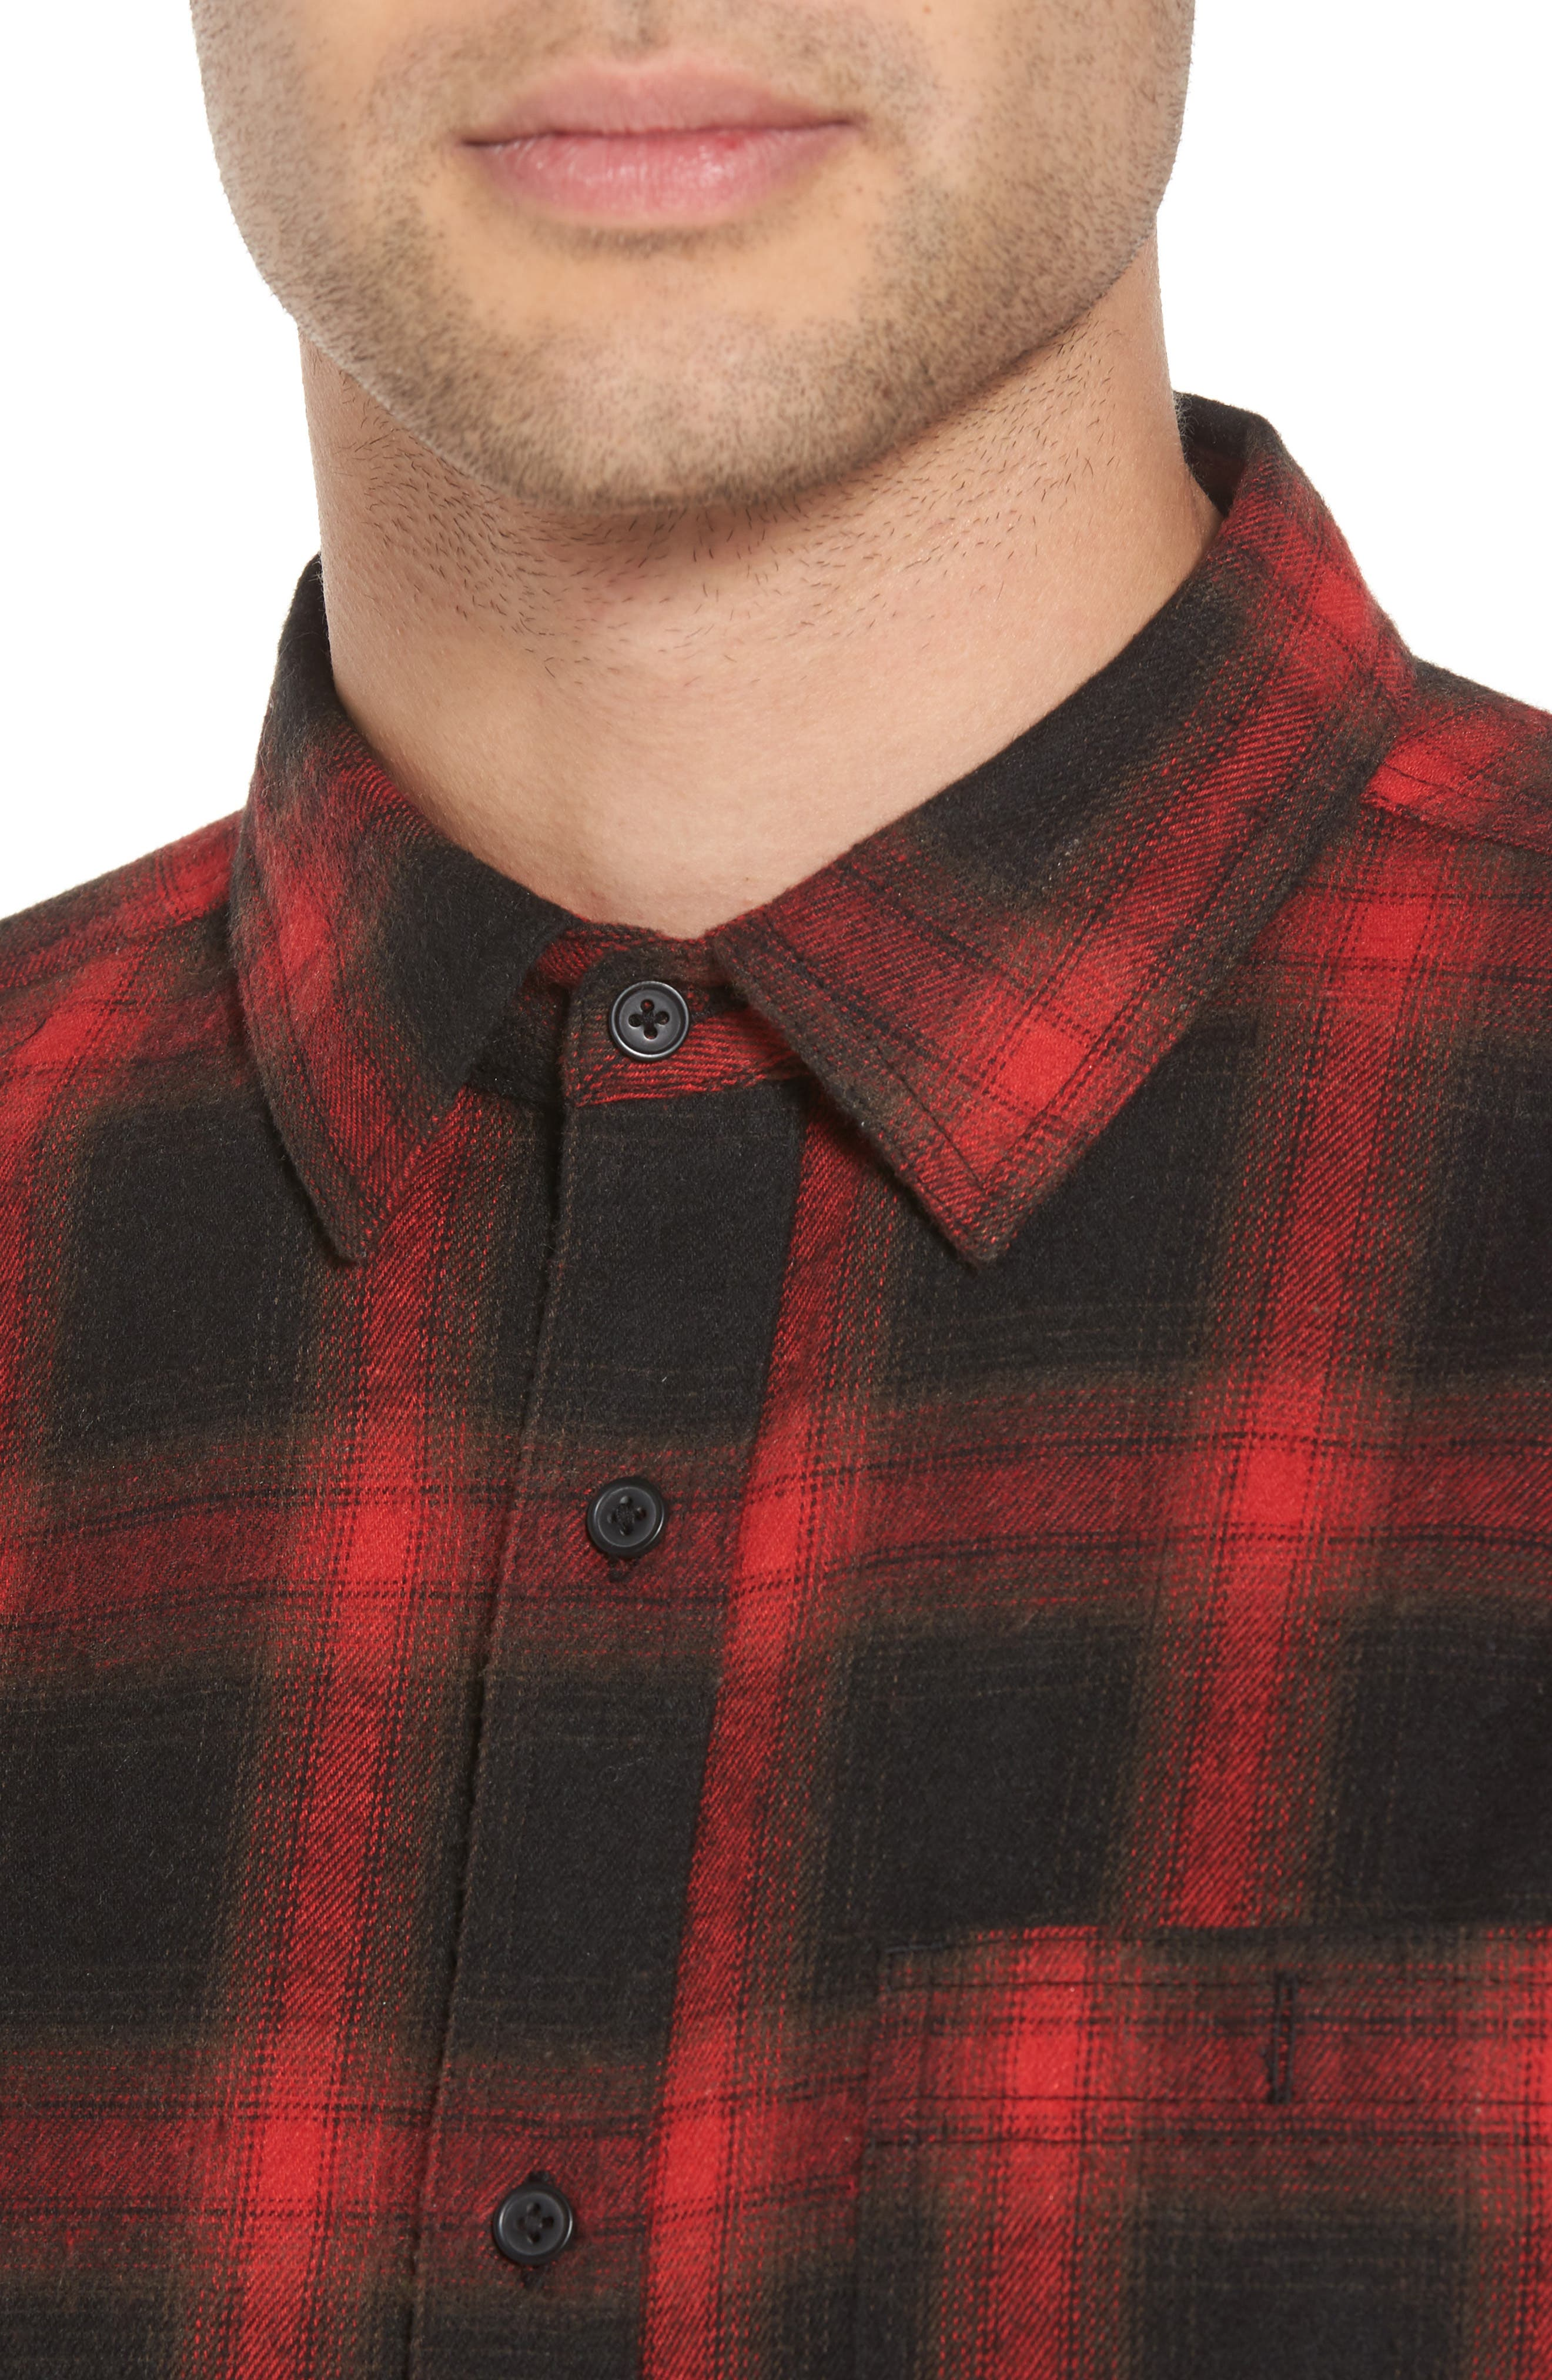 Shredded Plaid Flannel Shirt,                             Alternate thumbnail 4, color,                             Black Rock Red Ombre Check